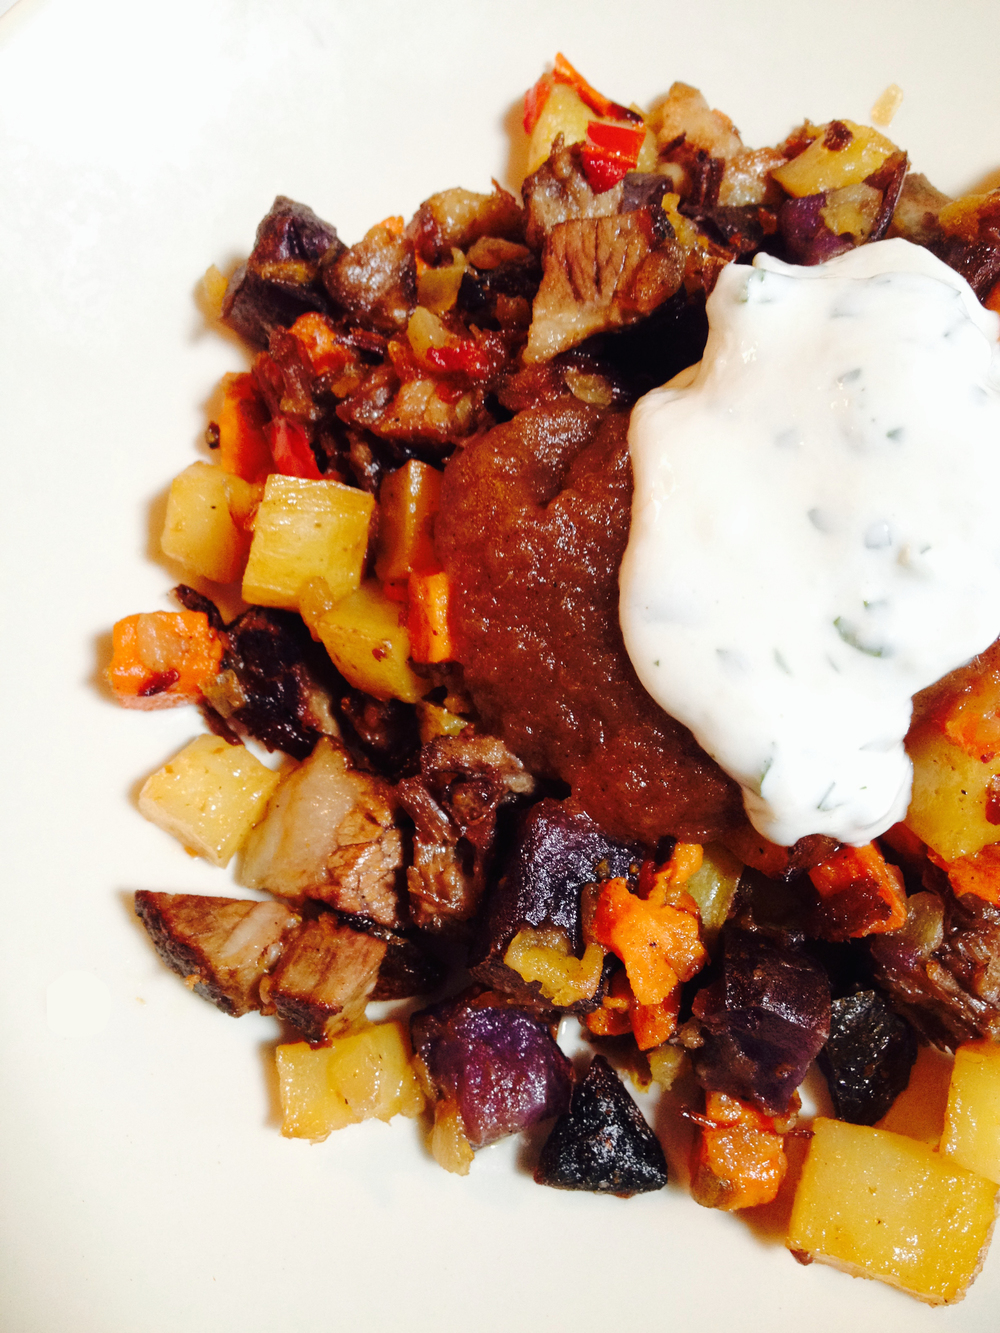 Beef Brisket Hash with applesauce and horseradish cream